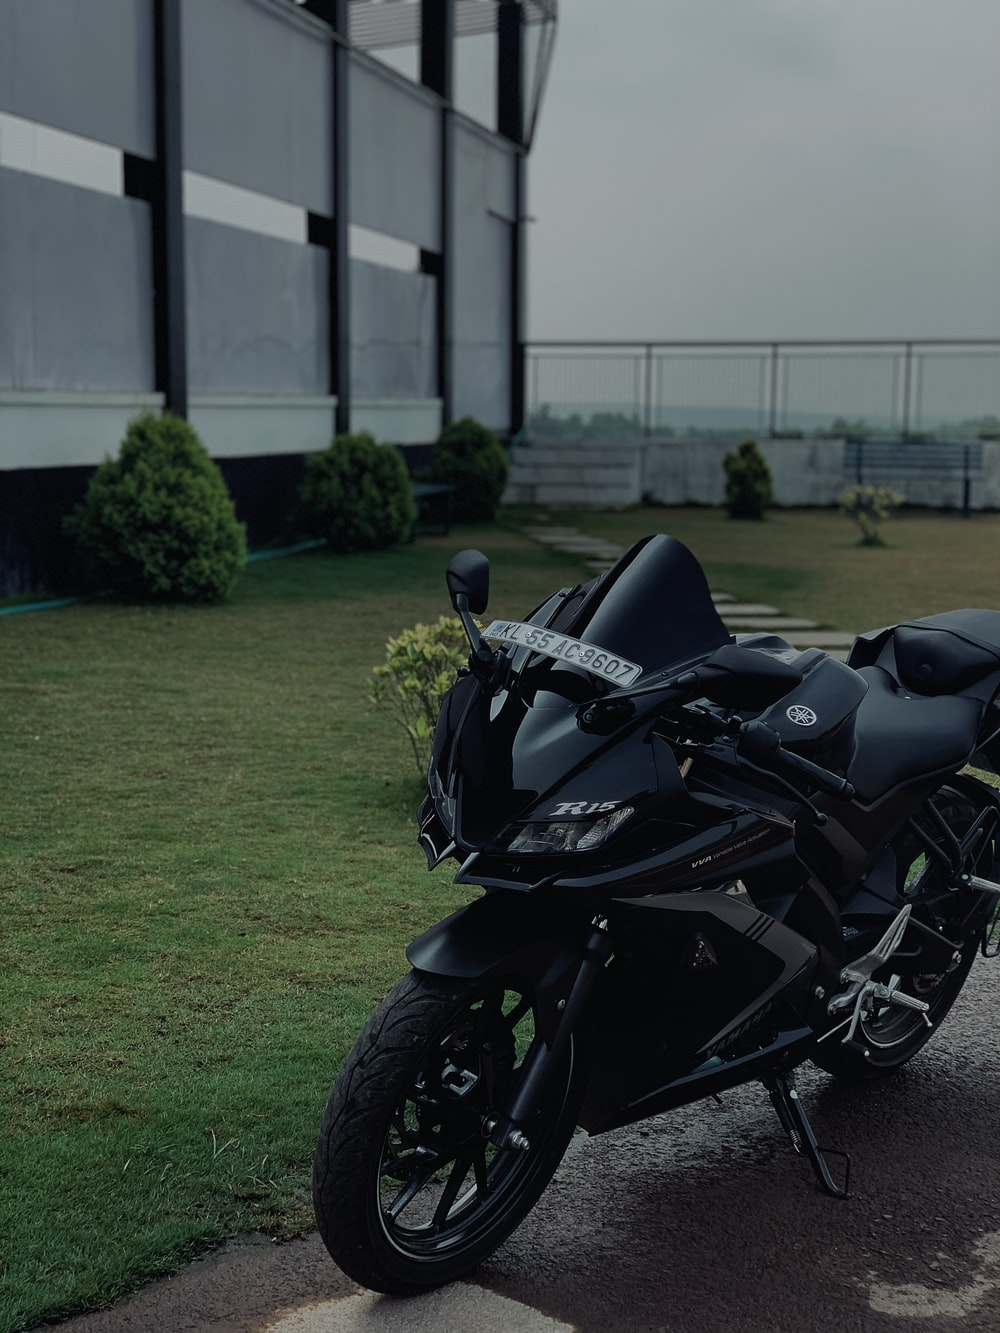 black sports bike parked on green grass field during daytime